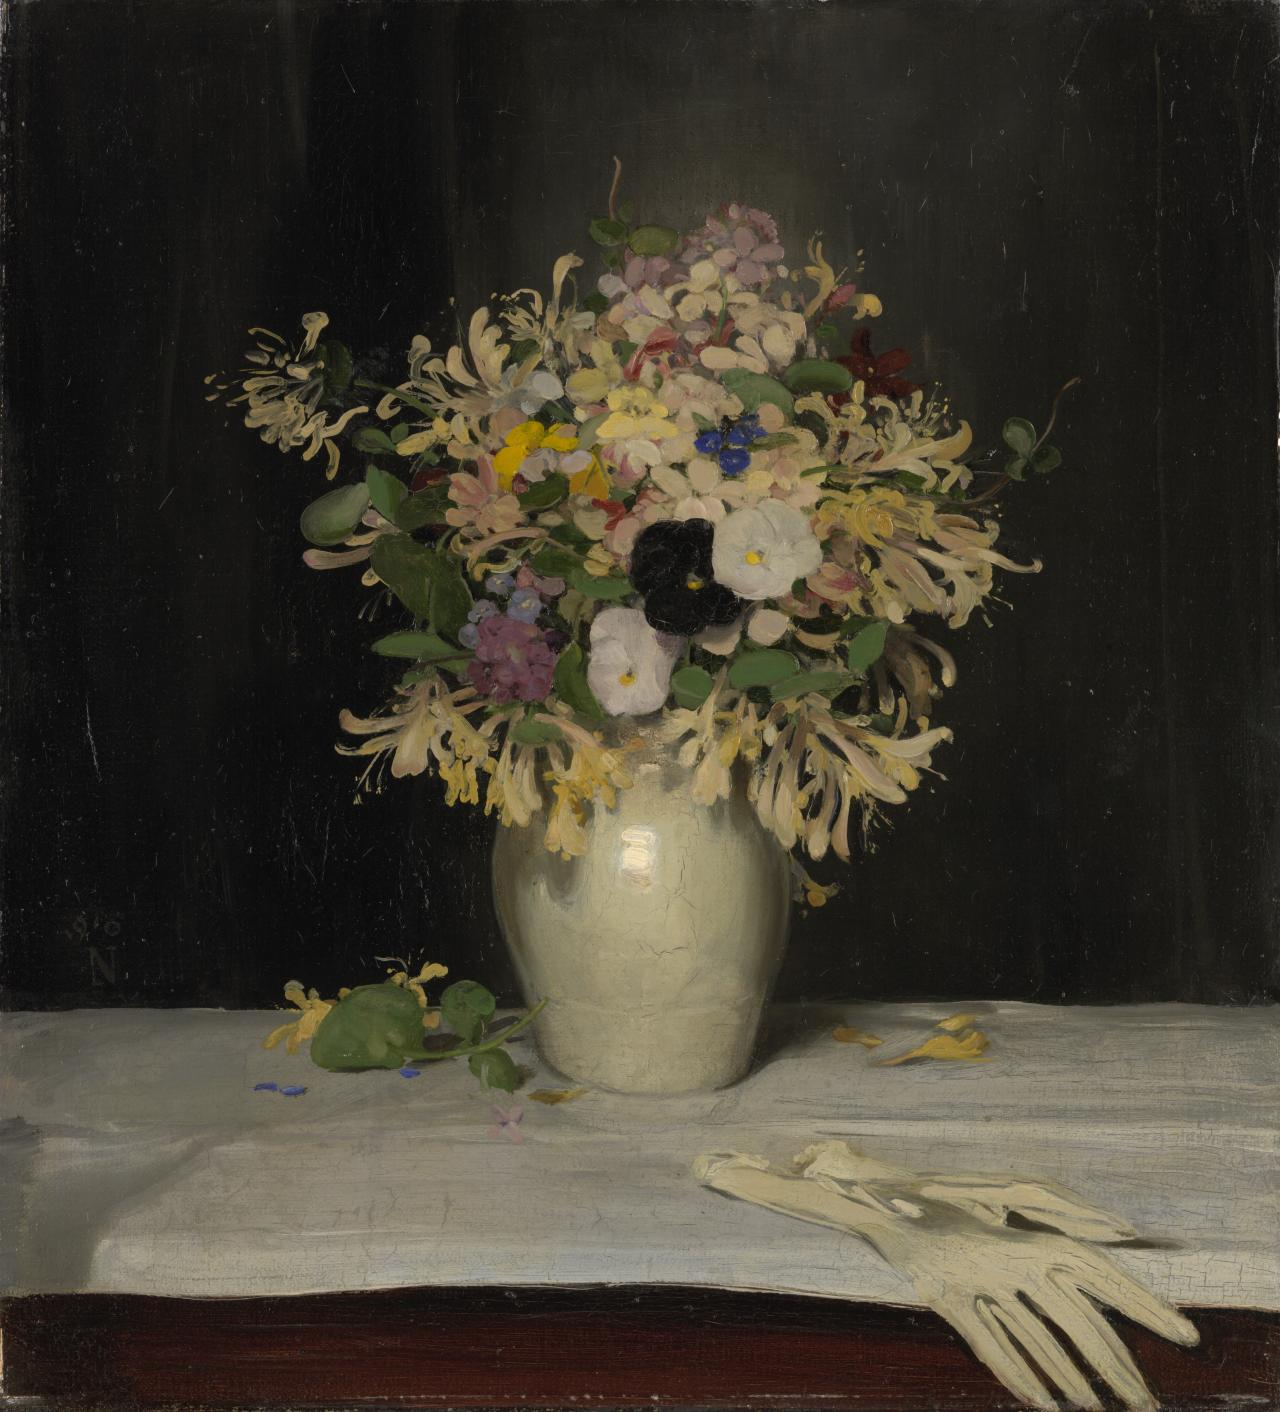 William NICHOLSON The black pansy 1910